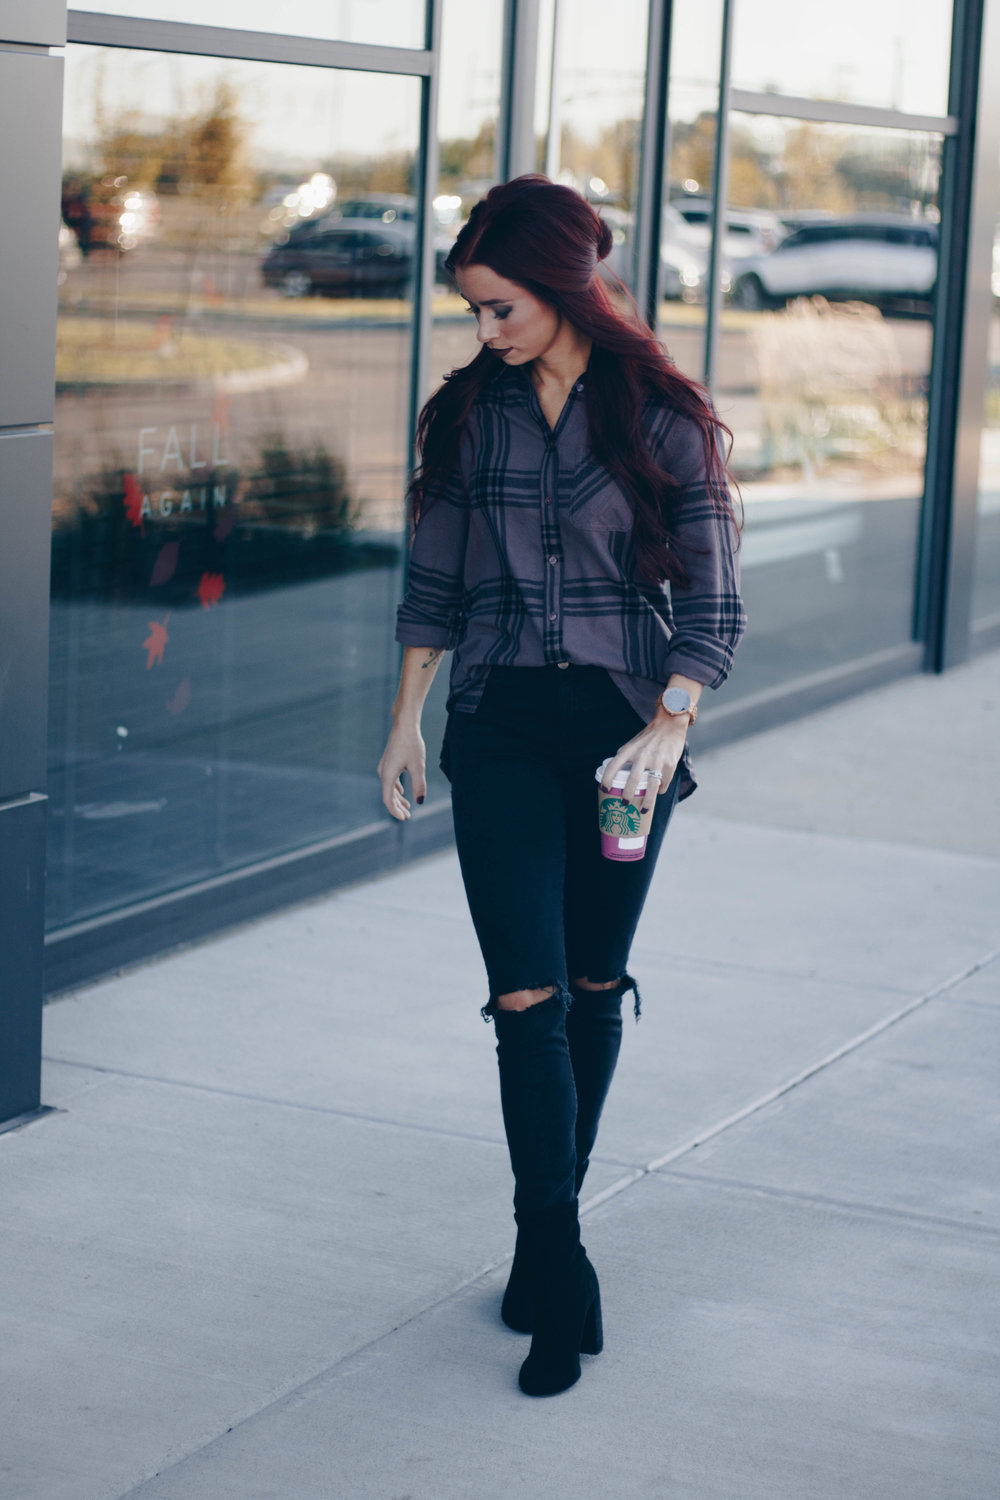 Flannel Shirt  ||  JORD Watch  (Use code TRENDYININDY50 for $50 off) ||  Black Denim  ||  Black Booties  ||  Makeup